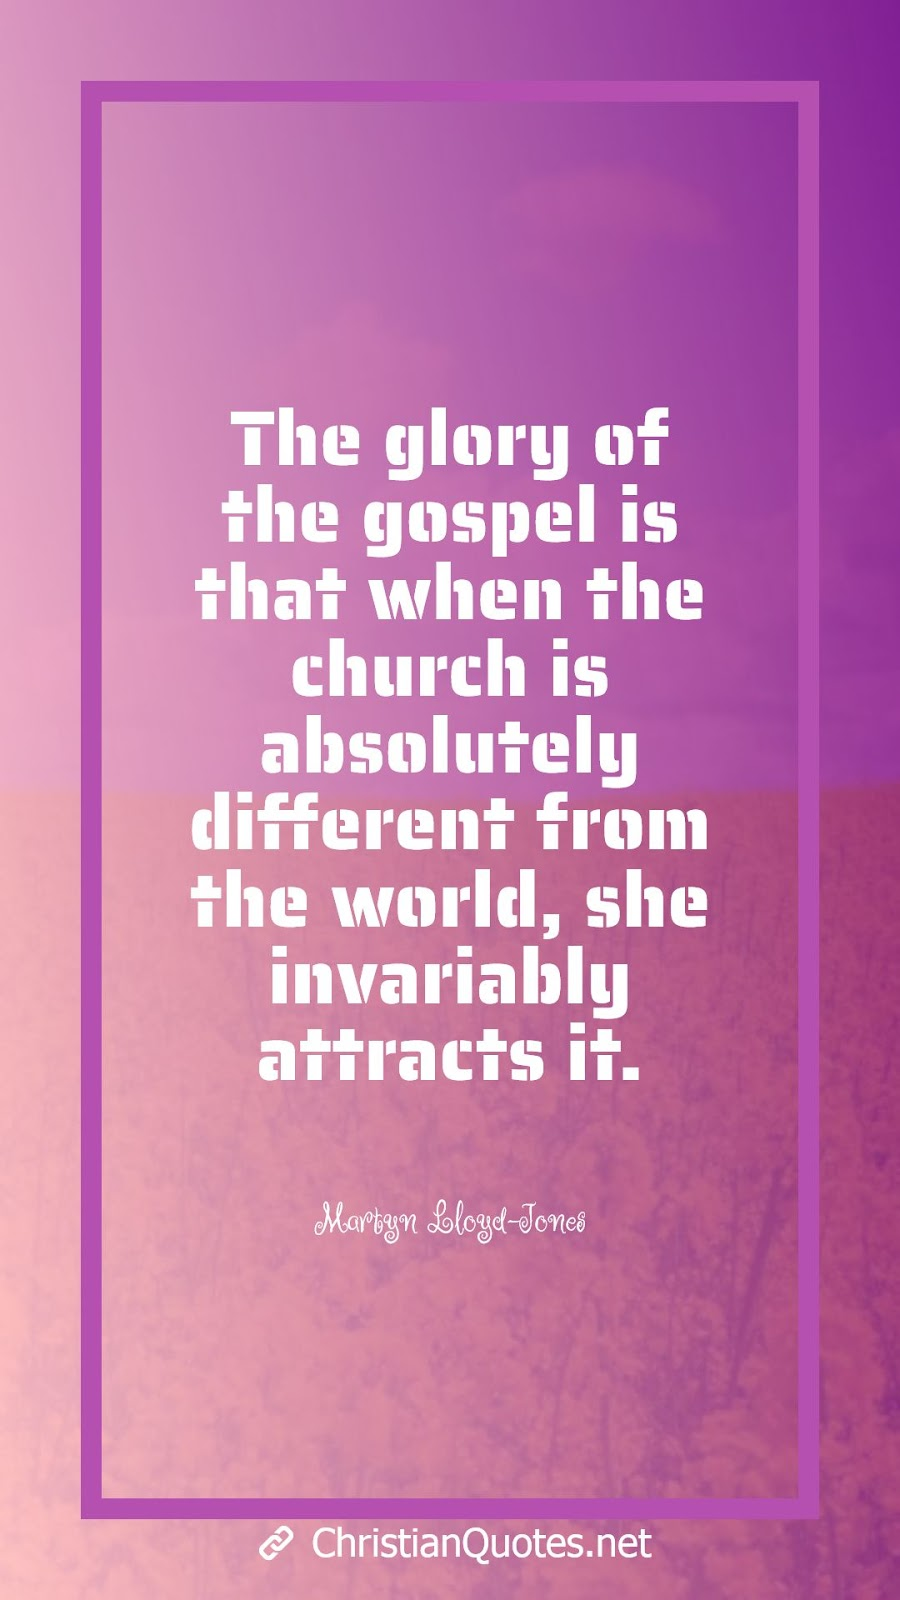 The glory of the gospel is that when the church is absolutely different from the world, she invariably attracts it.